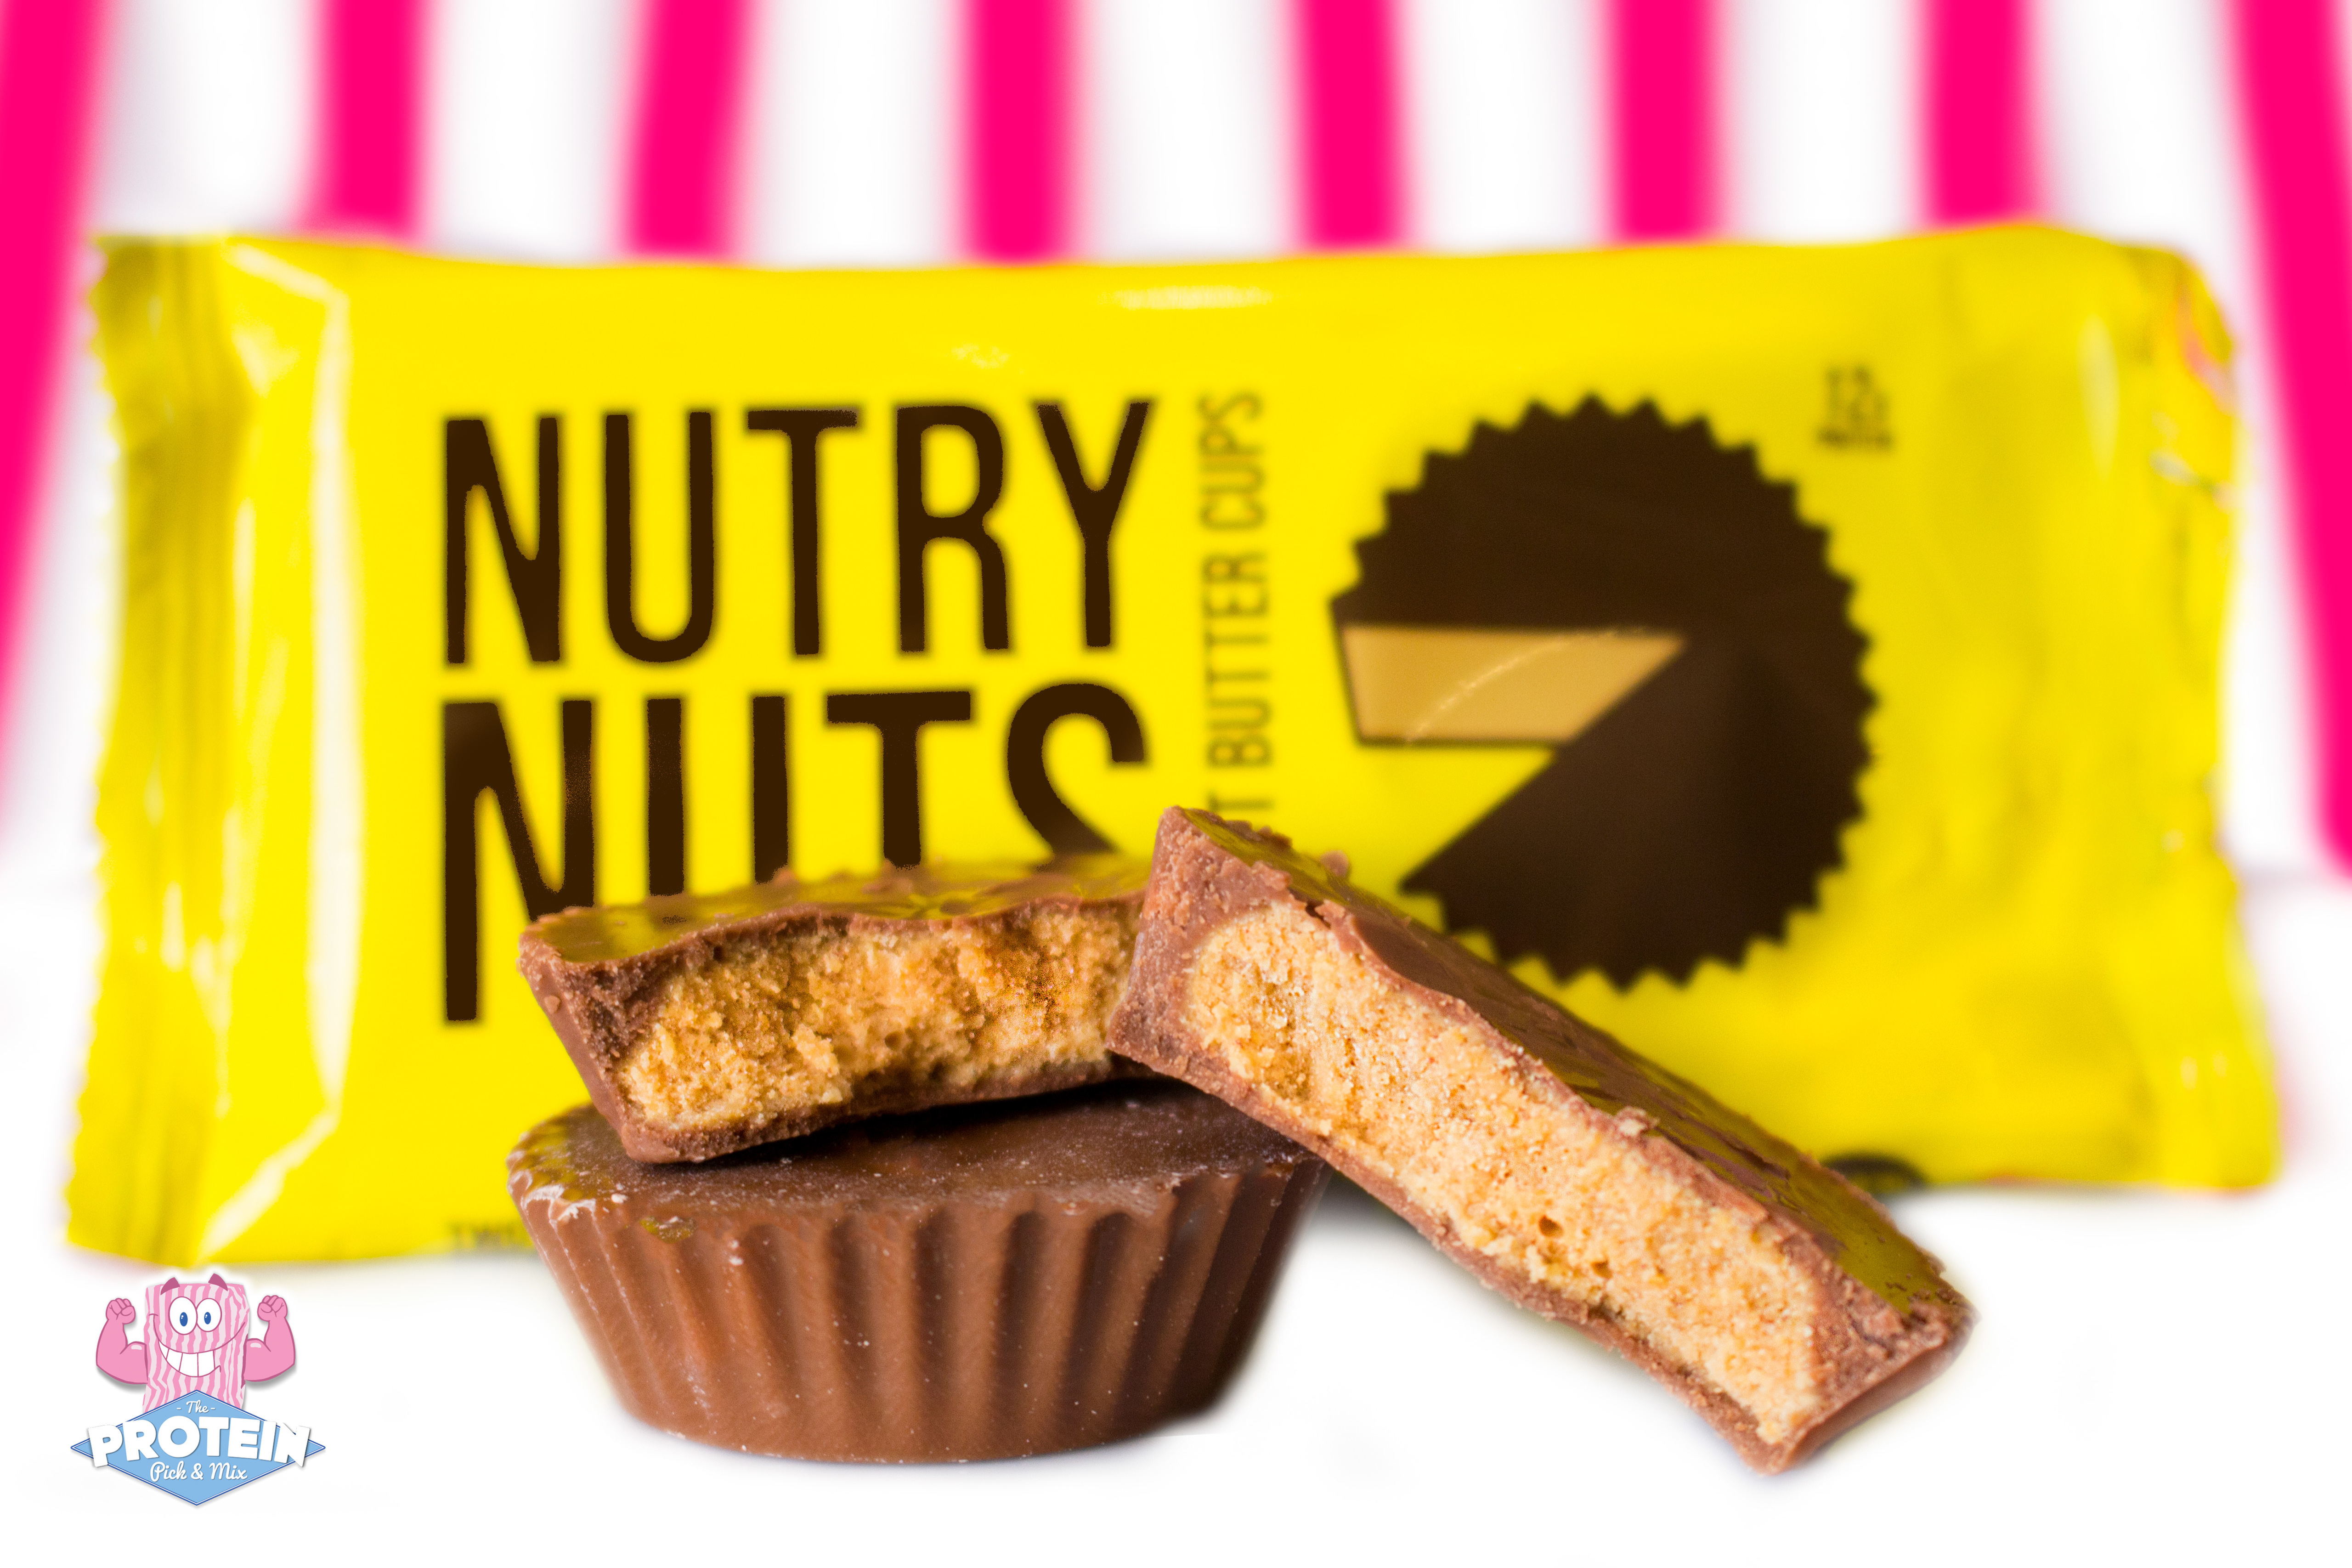 Nutry Nuts Protein Peanut Butter Cups 42g The Protein Pick And Mix